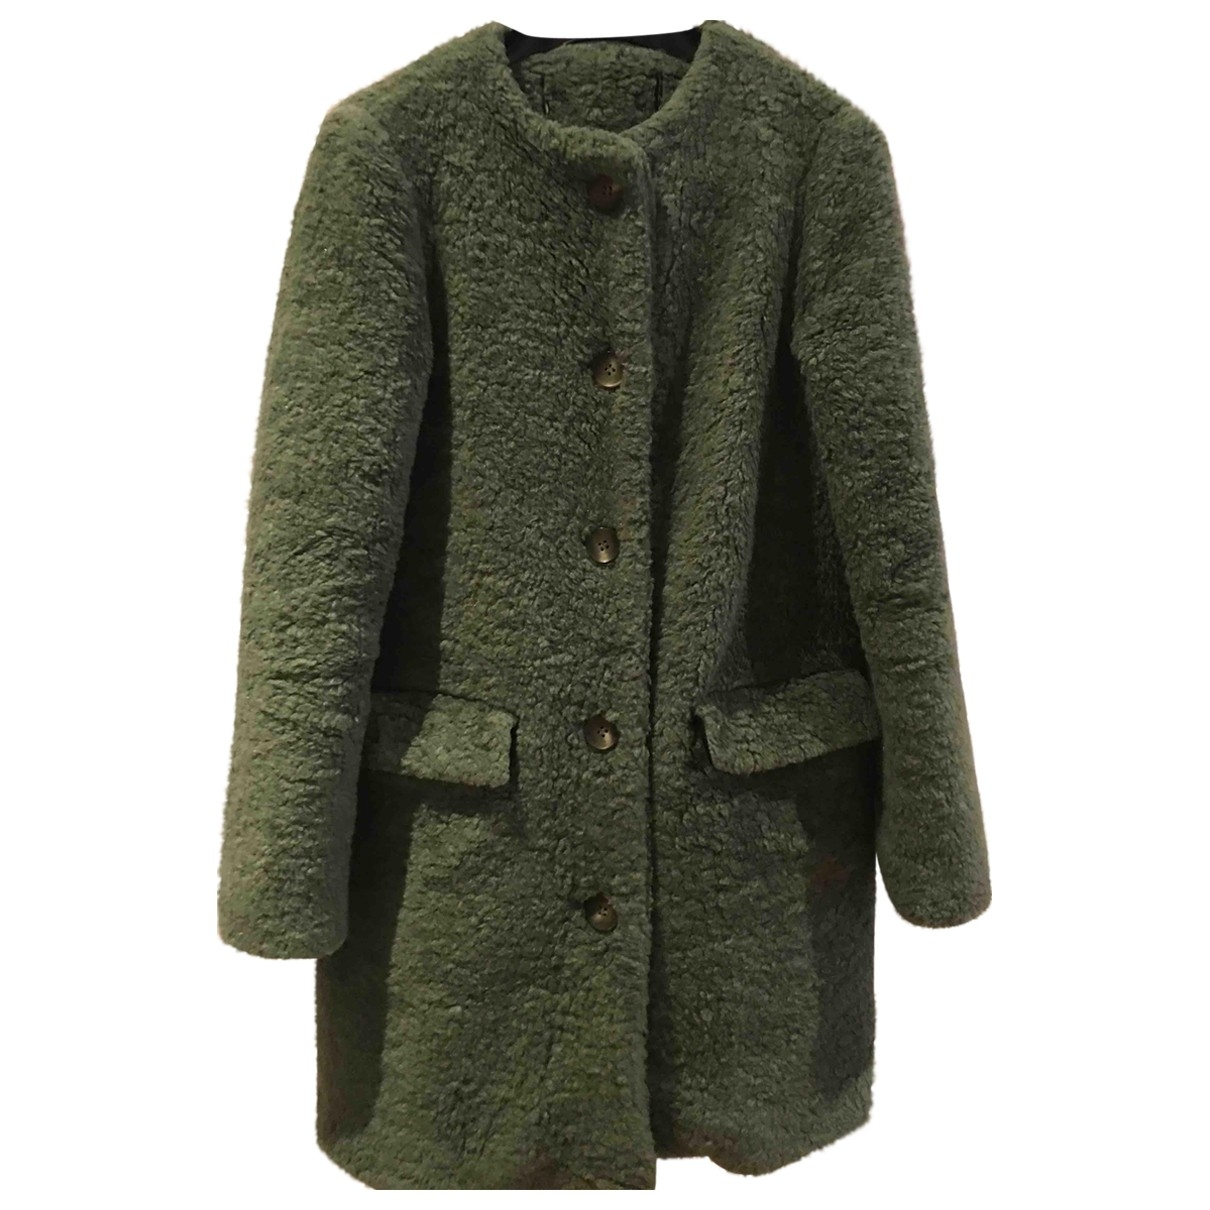 Zara \N Green coat for Women 40 IT